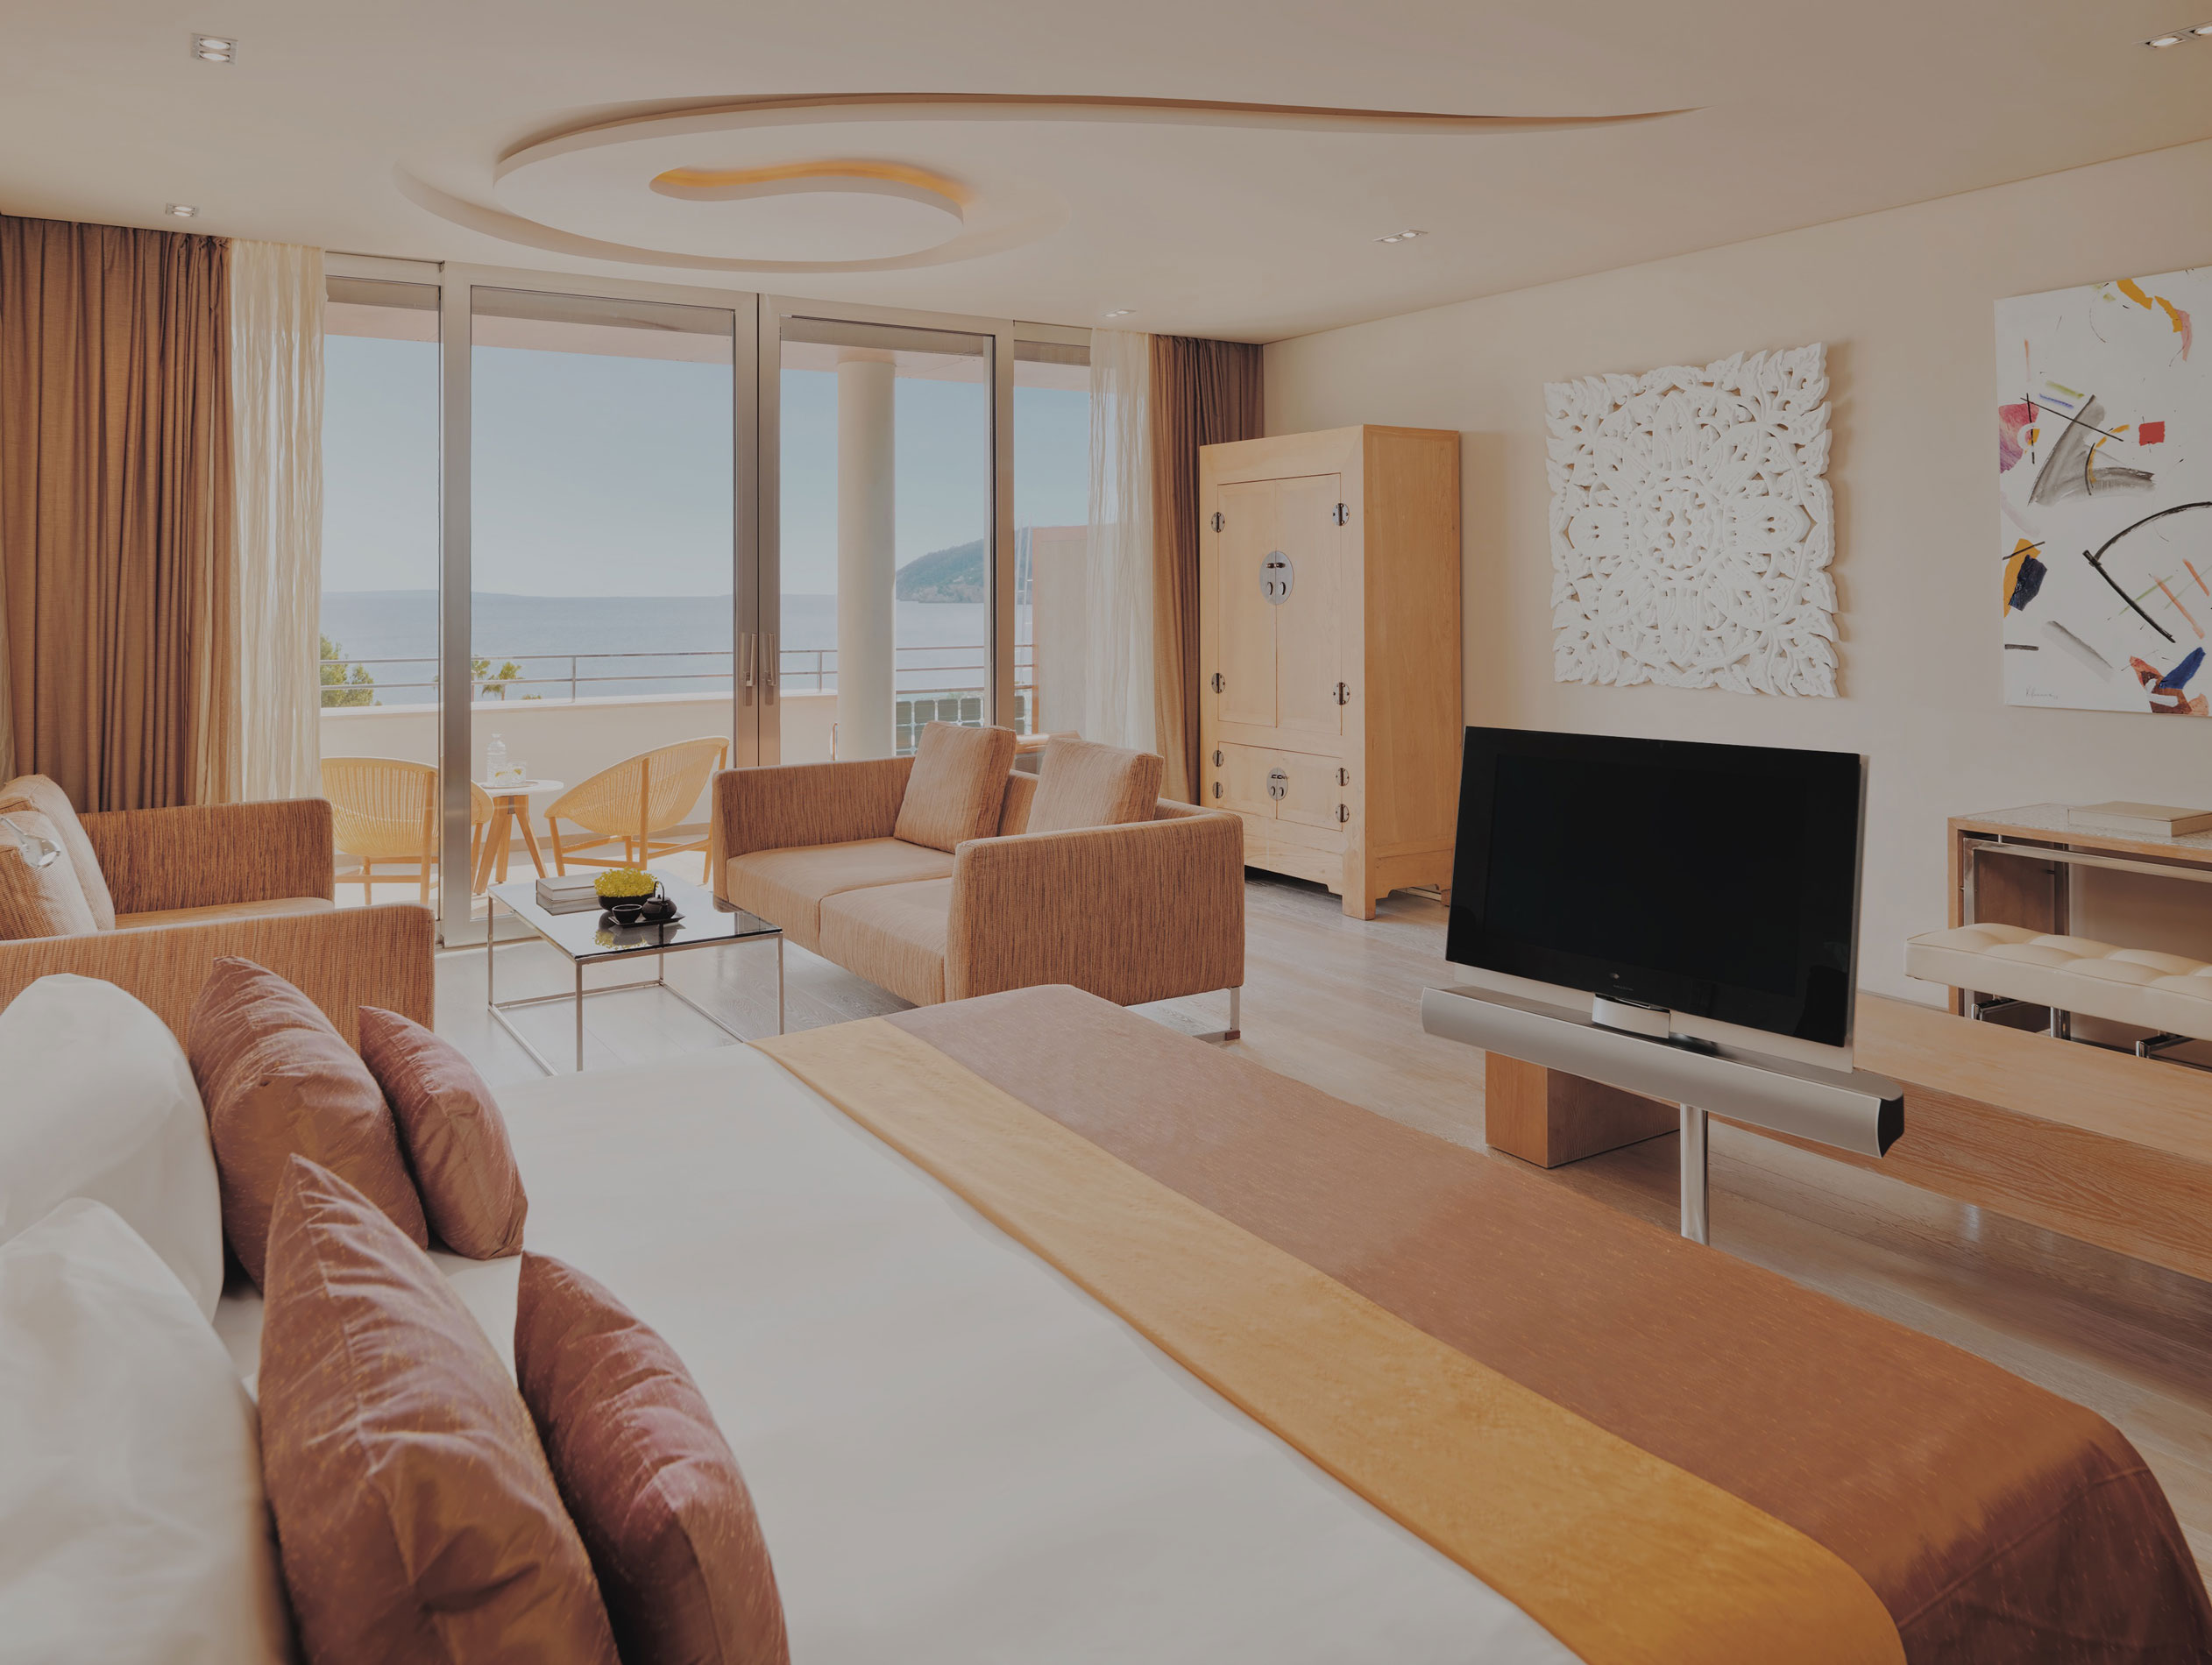 aguasdeibiza-habitacion-cloud-9-suite-sea-view-002